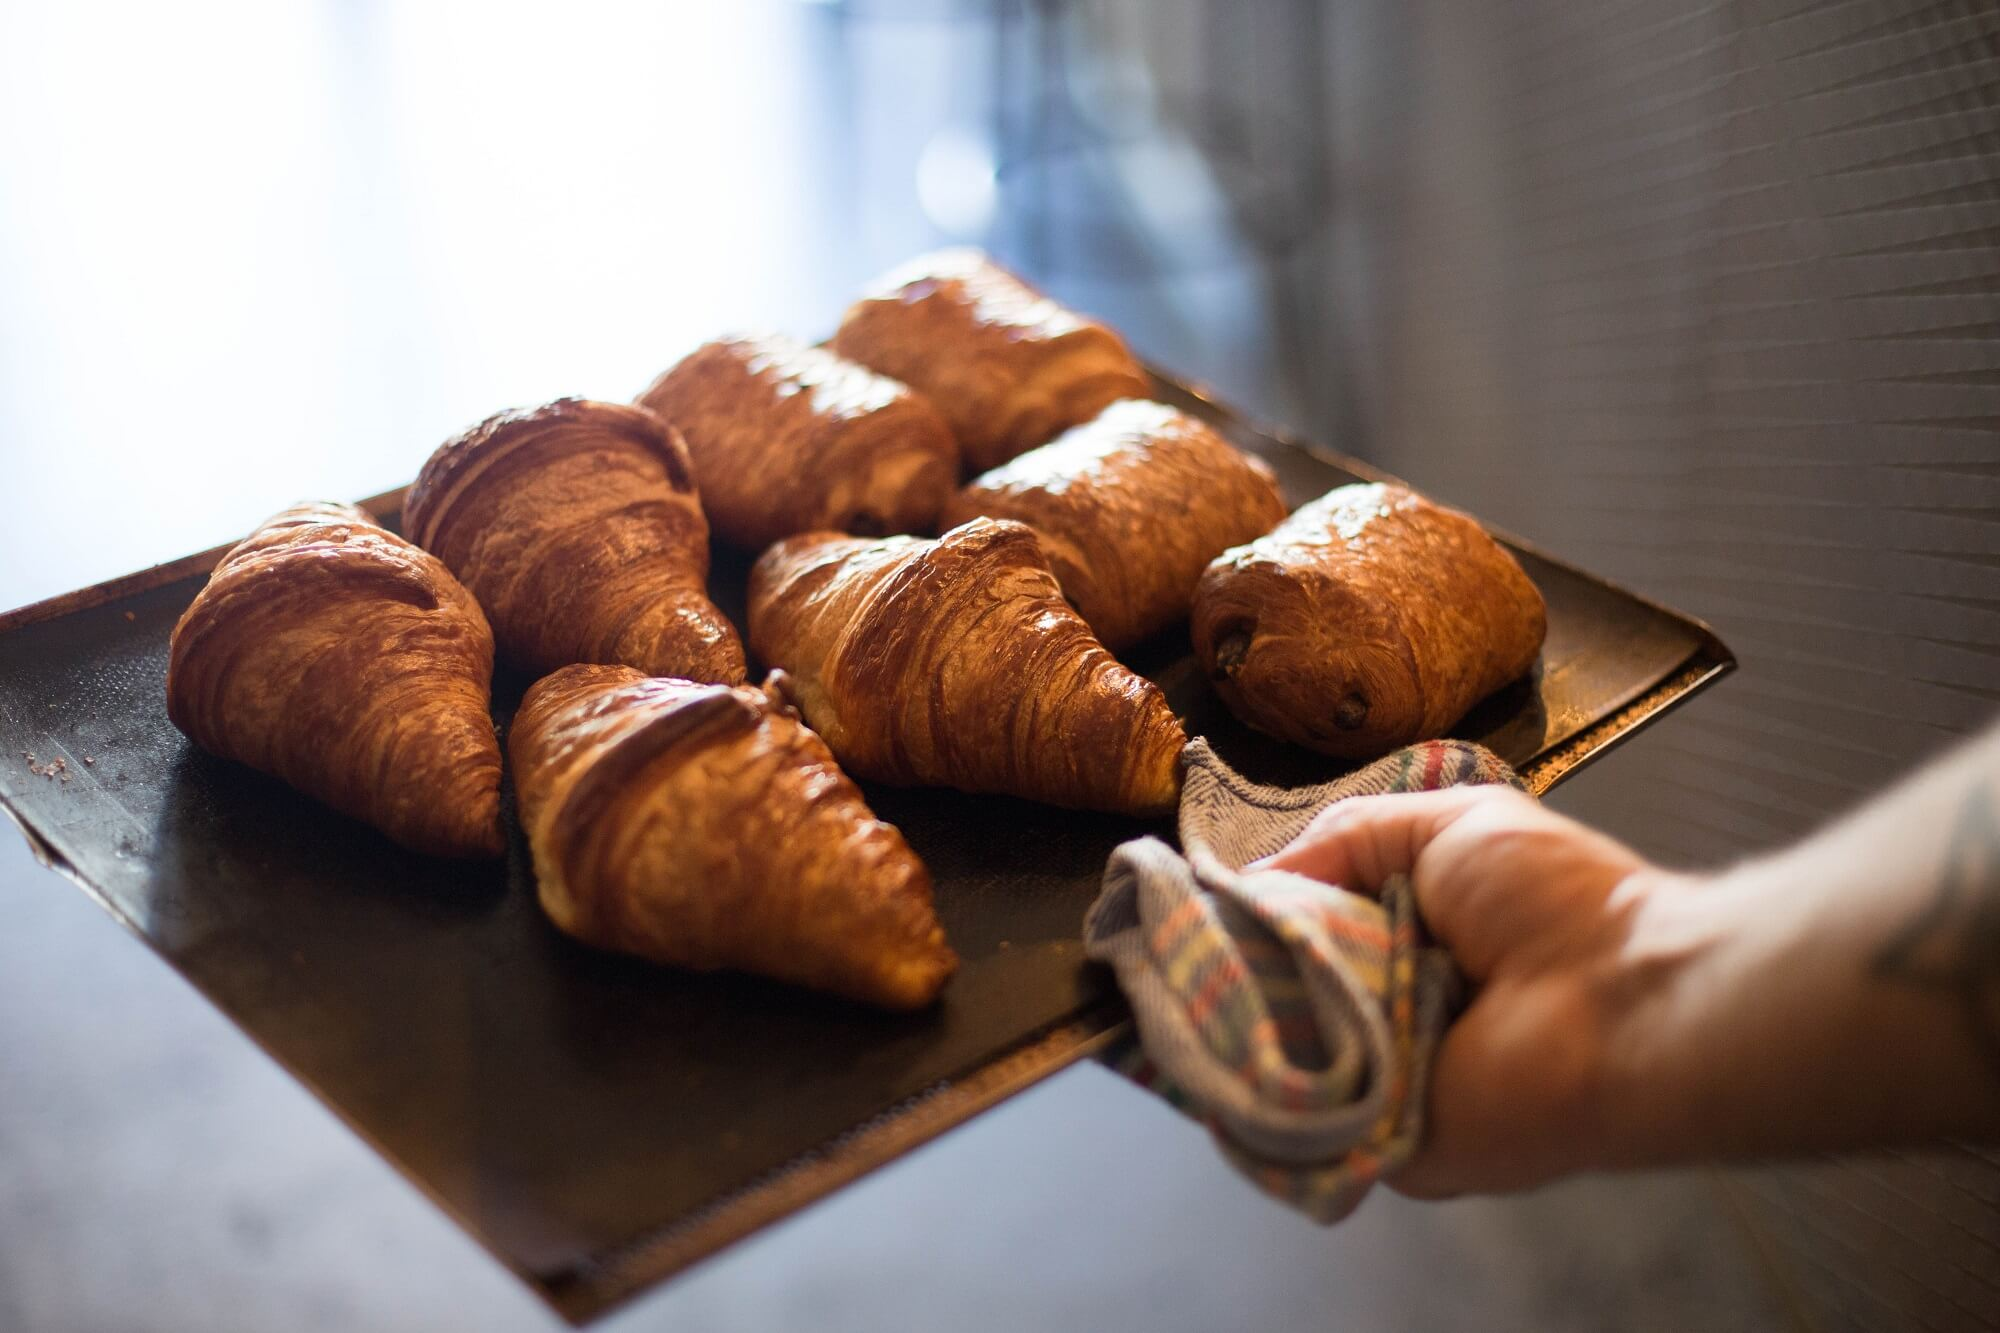 fresh puff pastry at bakery in uk